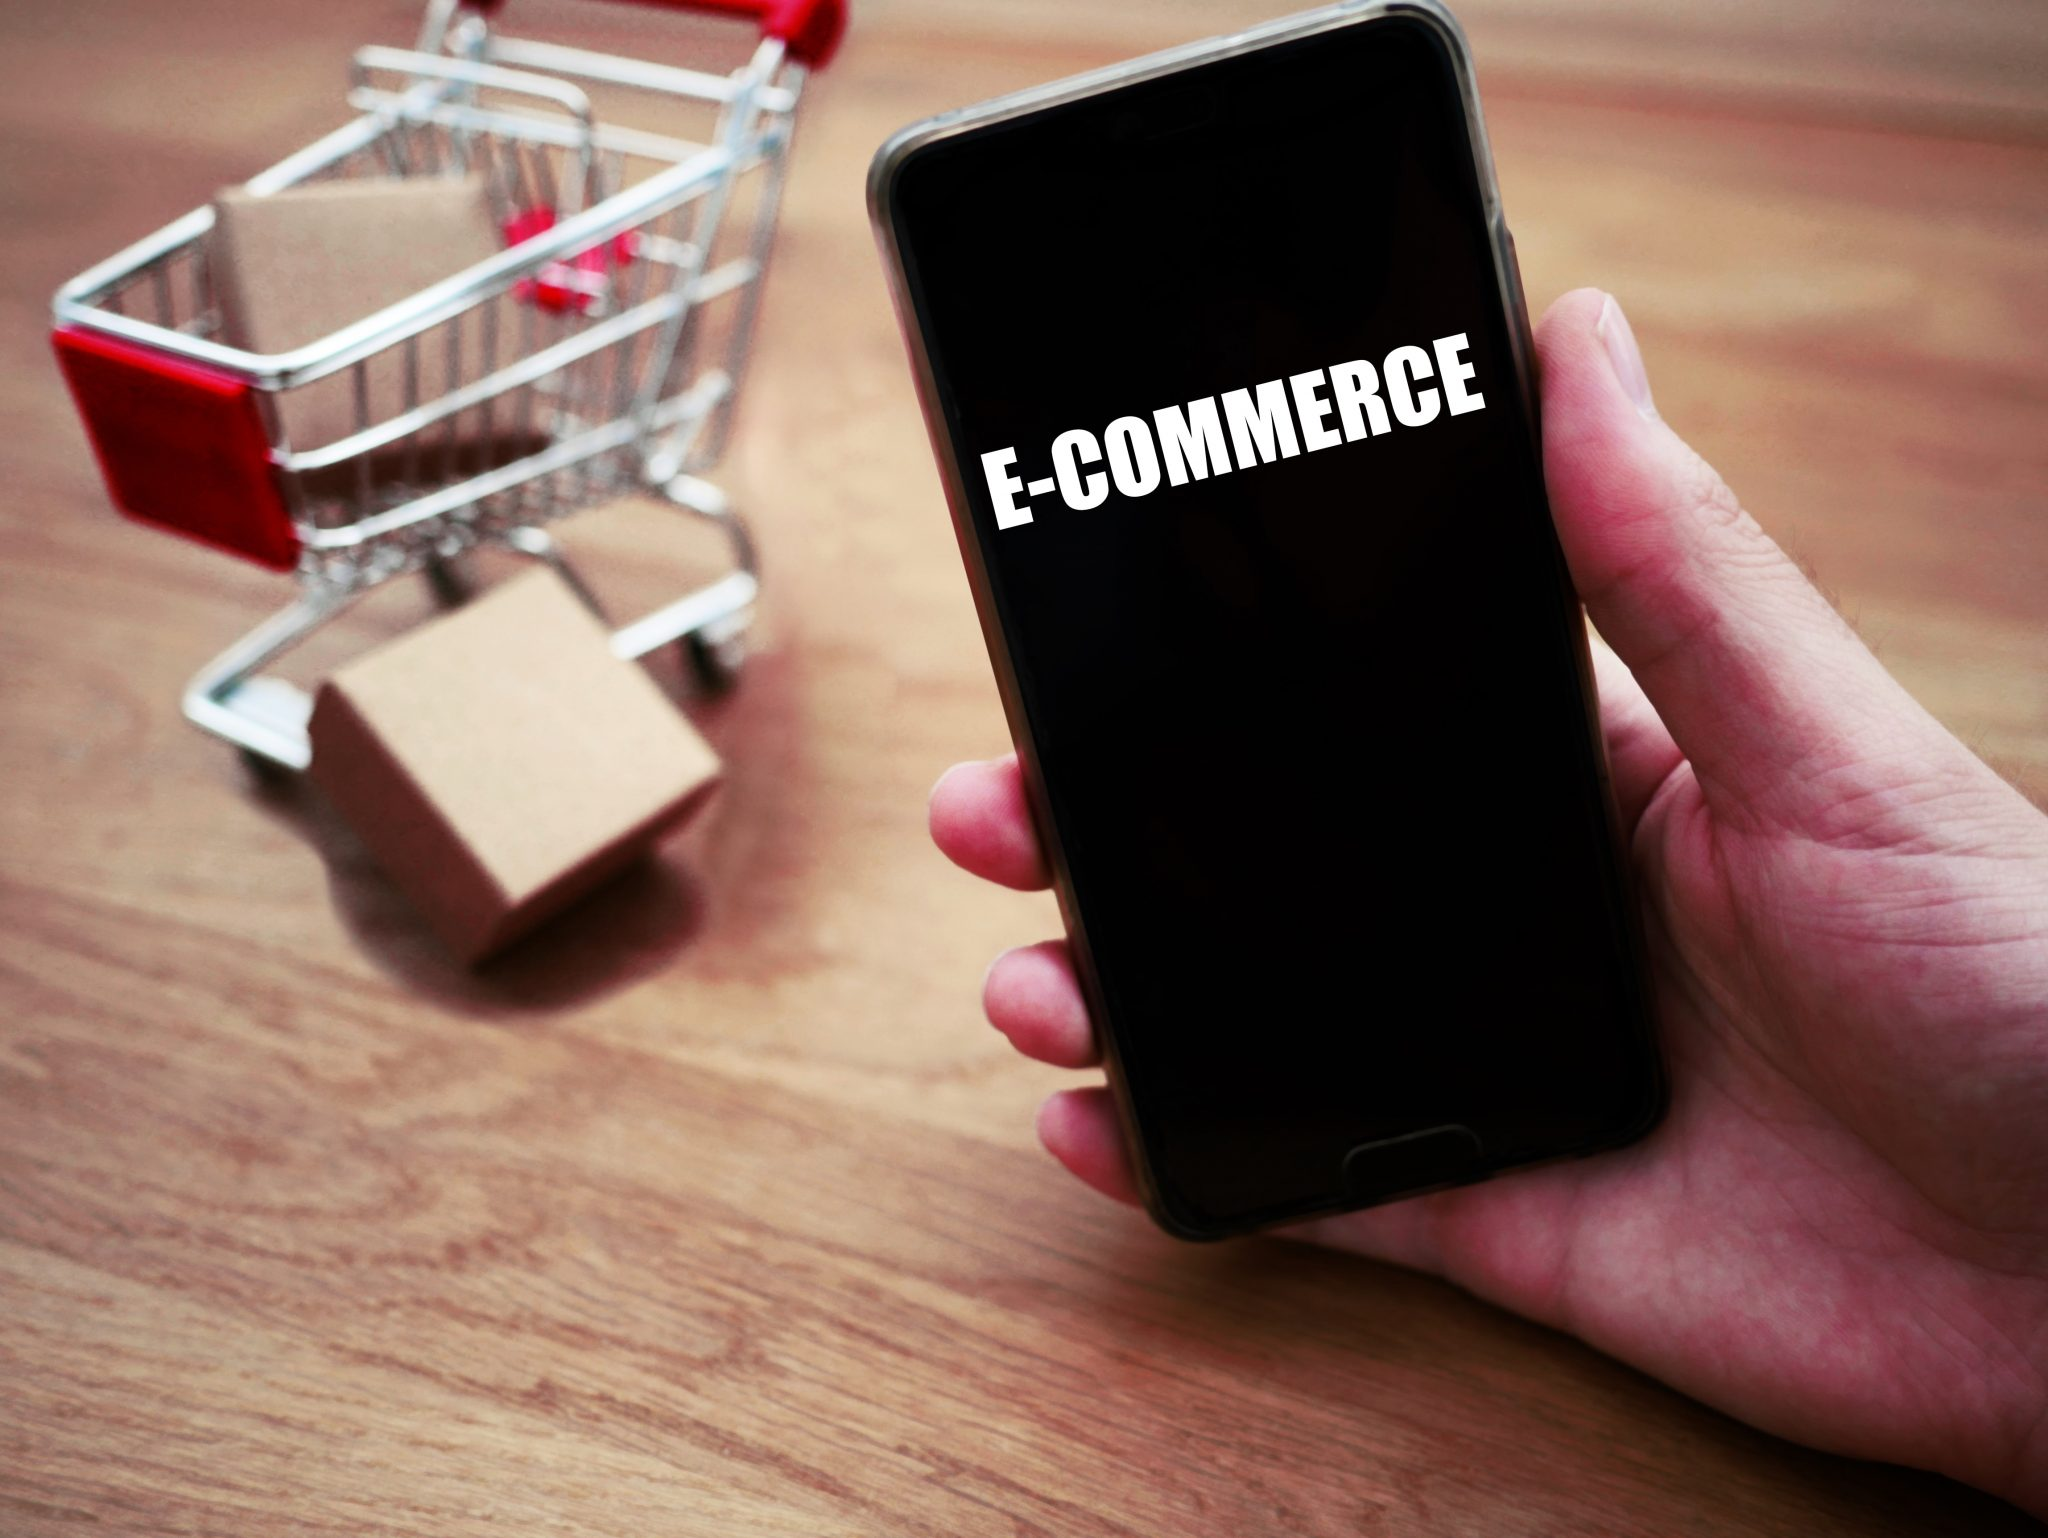 photo d'un mobile avec écrit e-commerce